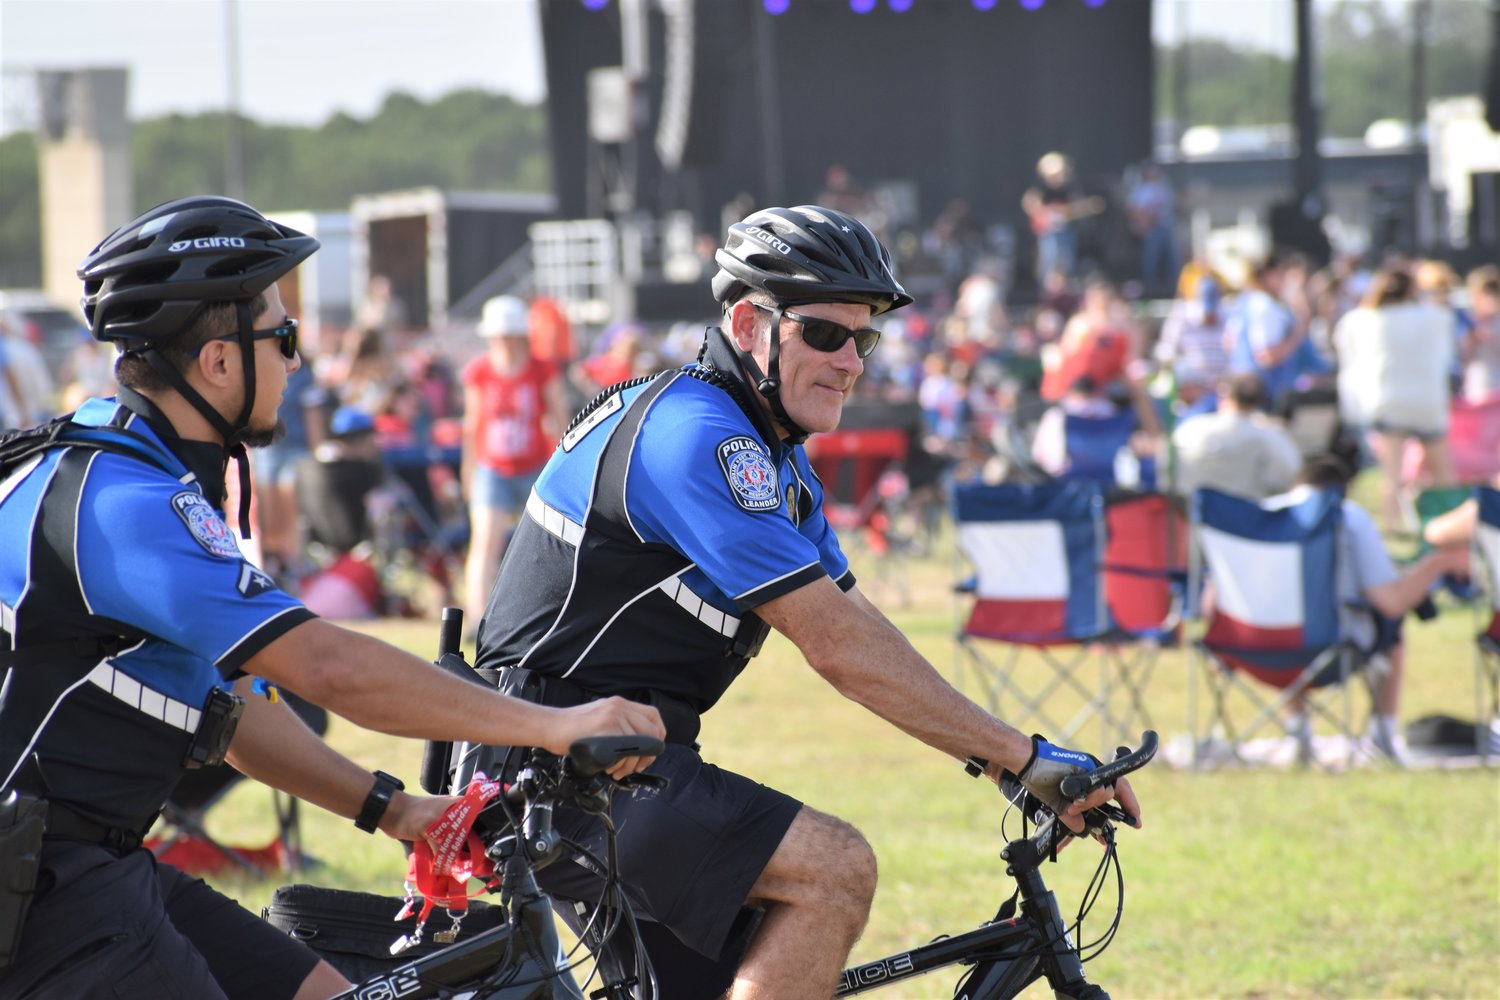 Police officers ride around the festival grounds on bicycles during Liberty Fest in Leander on Thursday.